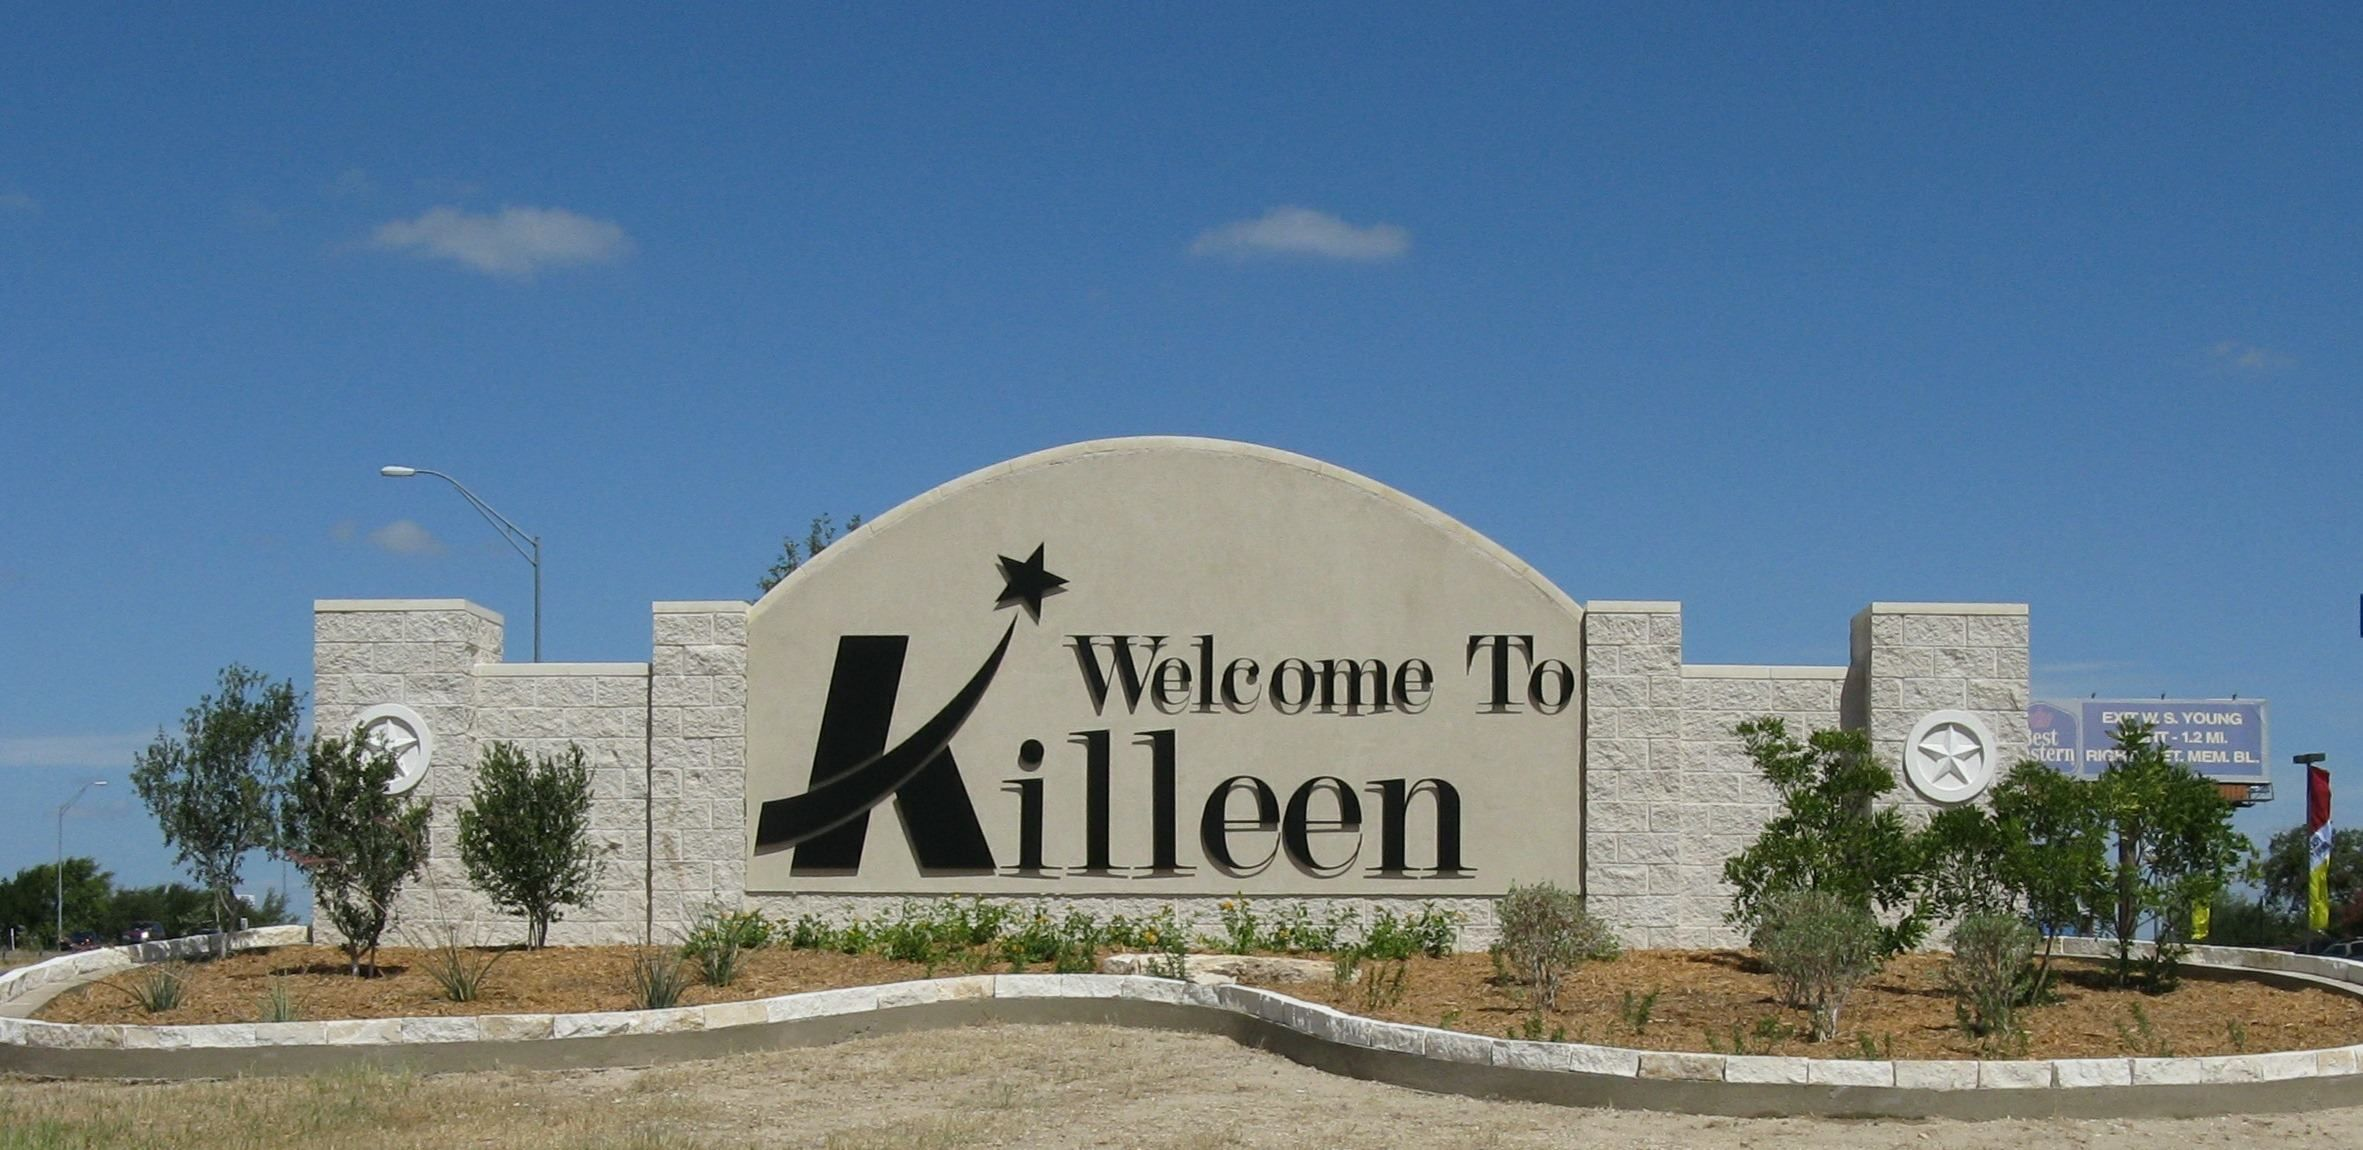 Reasons to Invest or Live in #Killeen   Homes/Houses for